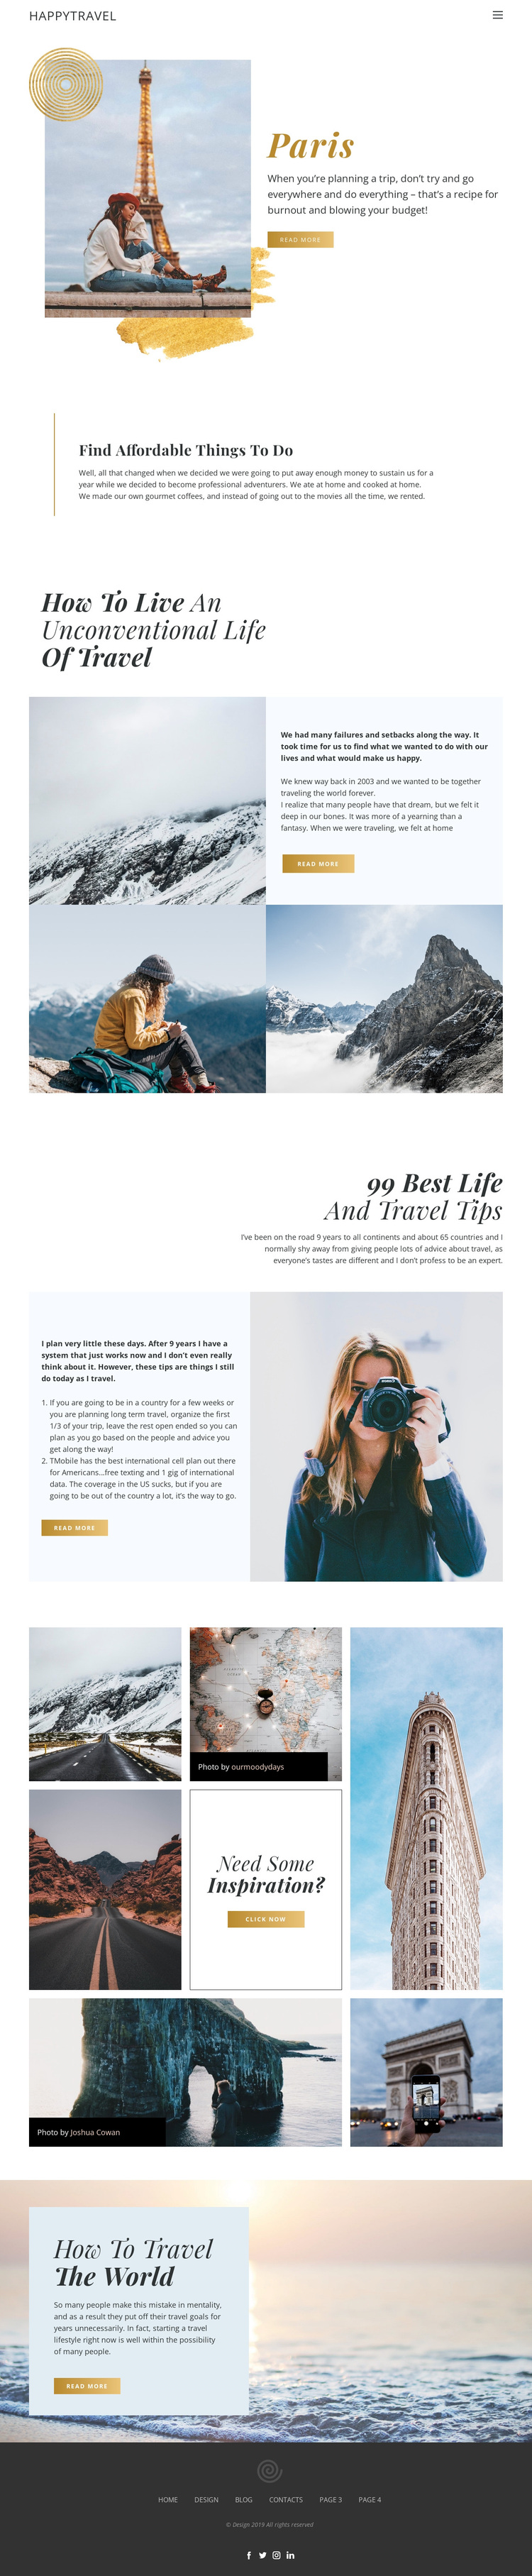 Travel Live Template